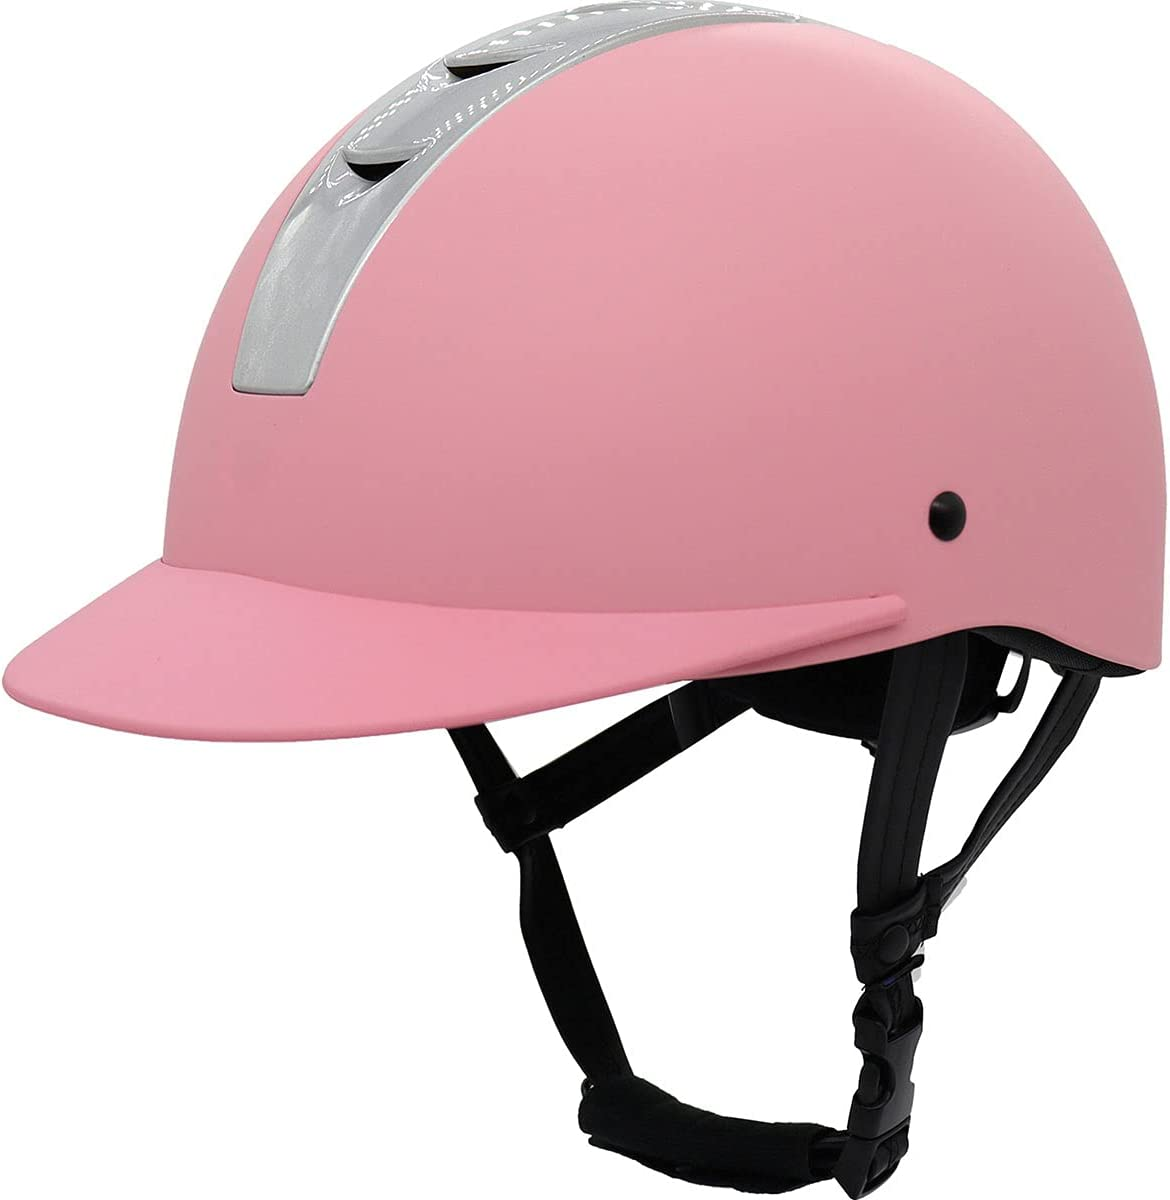 WFTD Equestrian National products Supplies Helmet for Summe Kids Adjustable Size Austin Mall